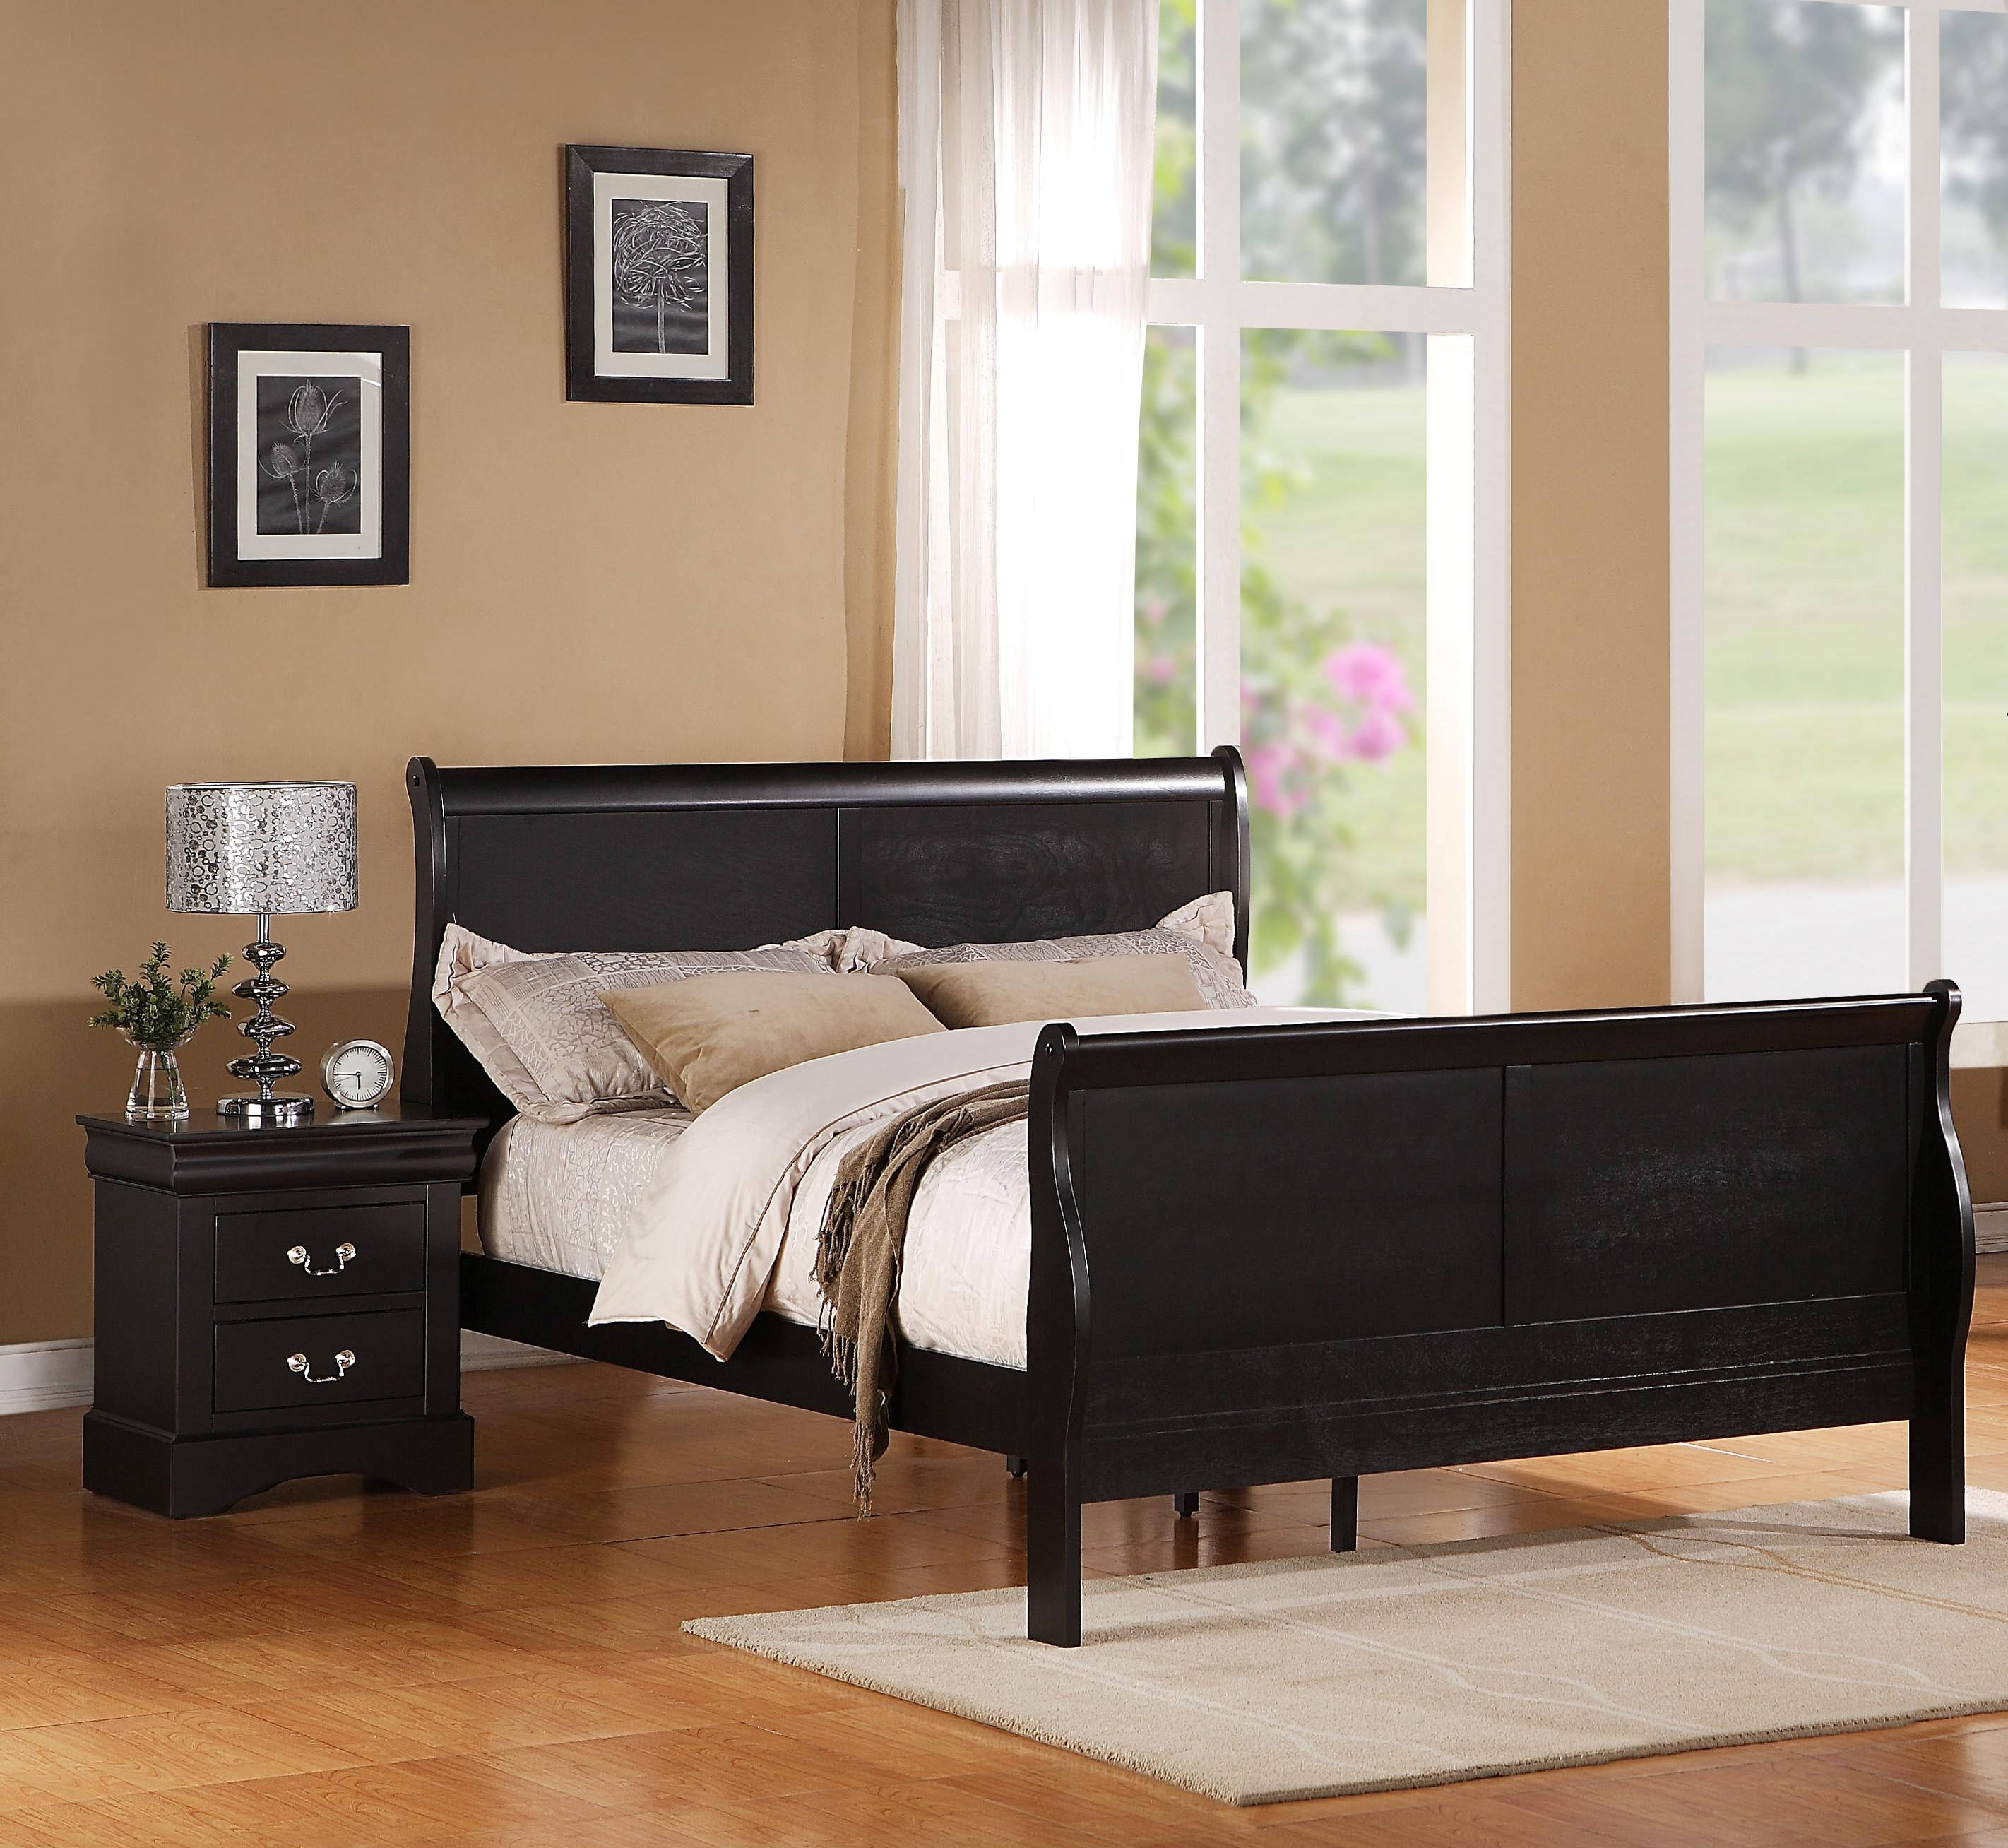 Standard Furniture Lewiston Black 2pc Bedroom Set with Queen Sleigh Bed